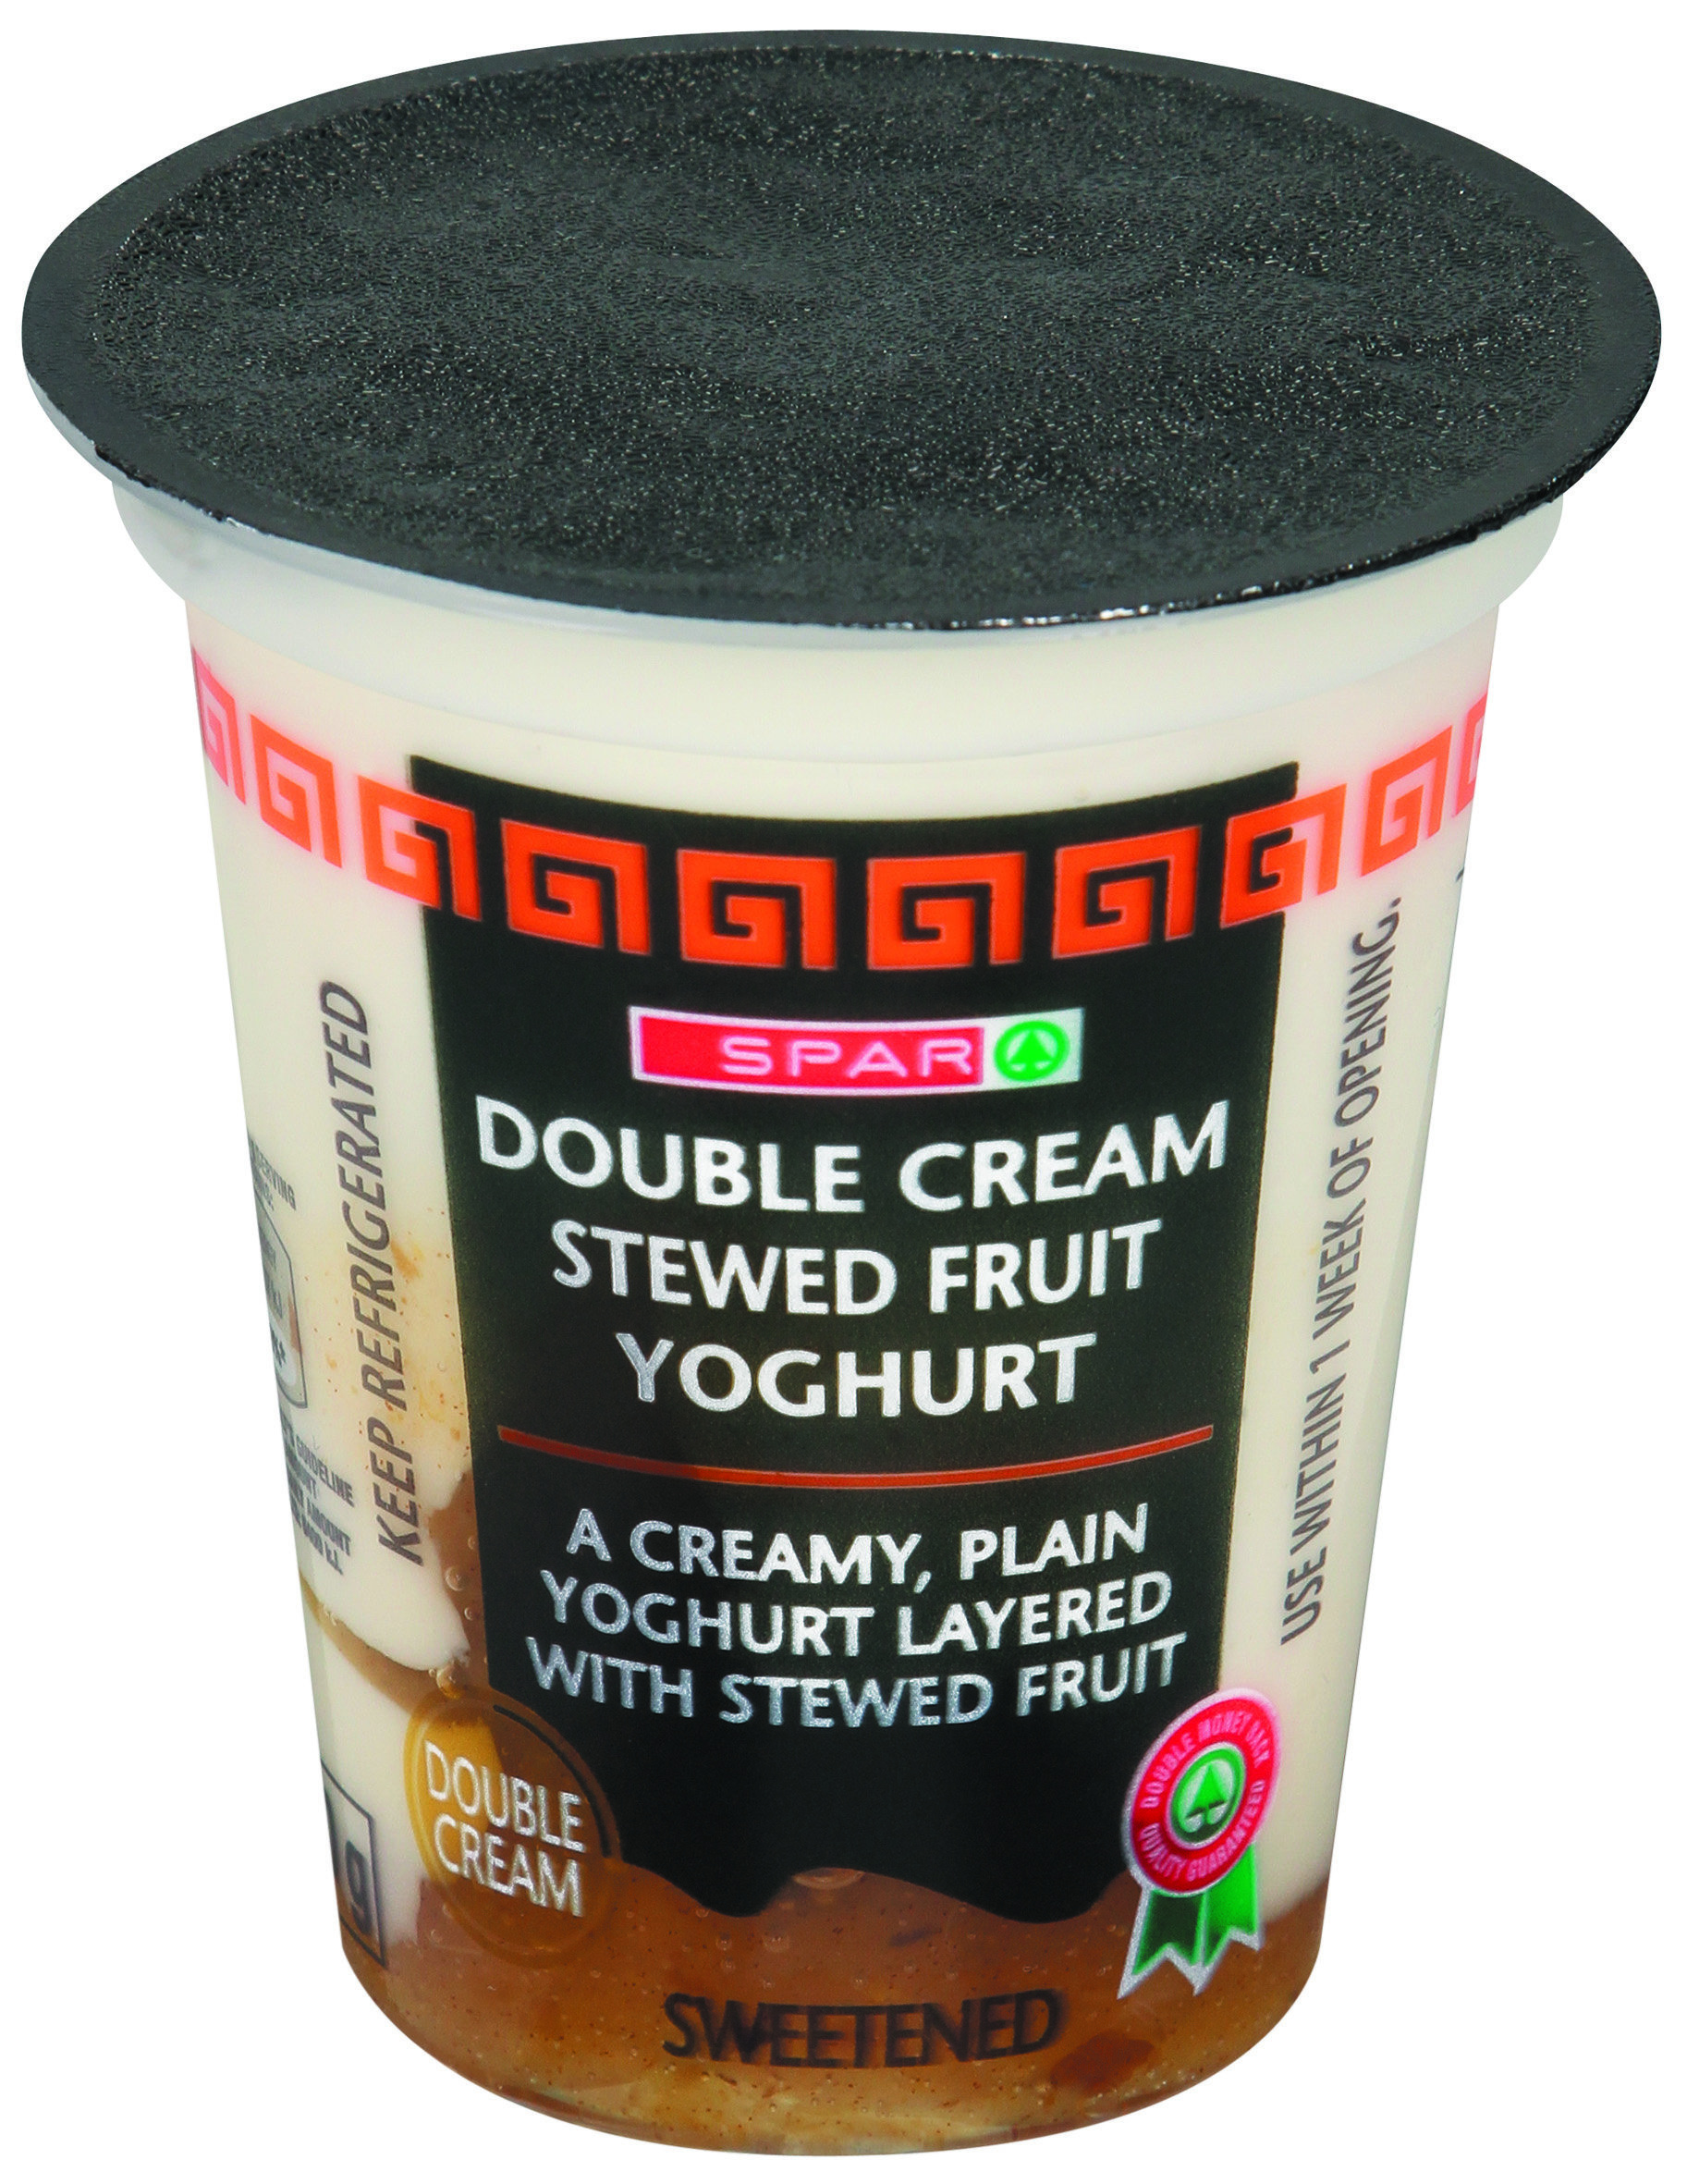 Stewed Fruit Yoghurt